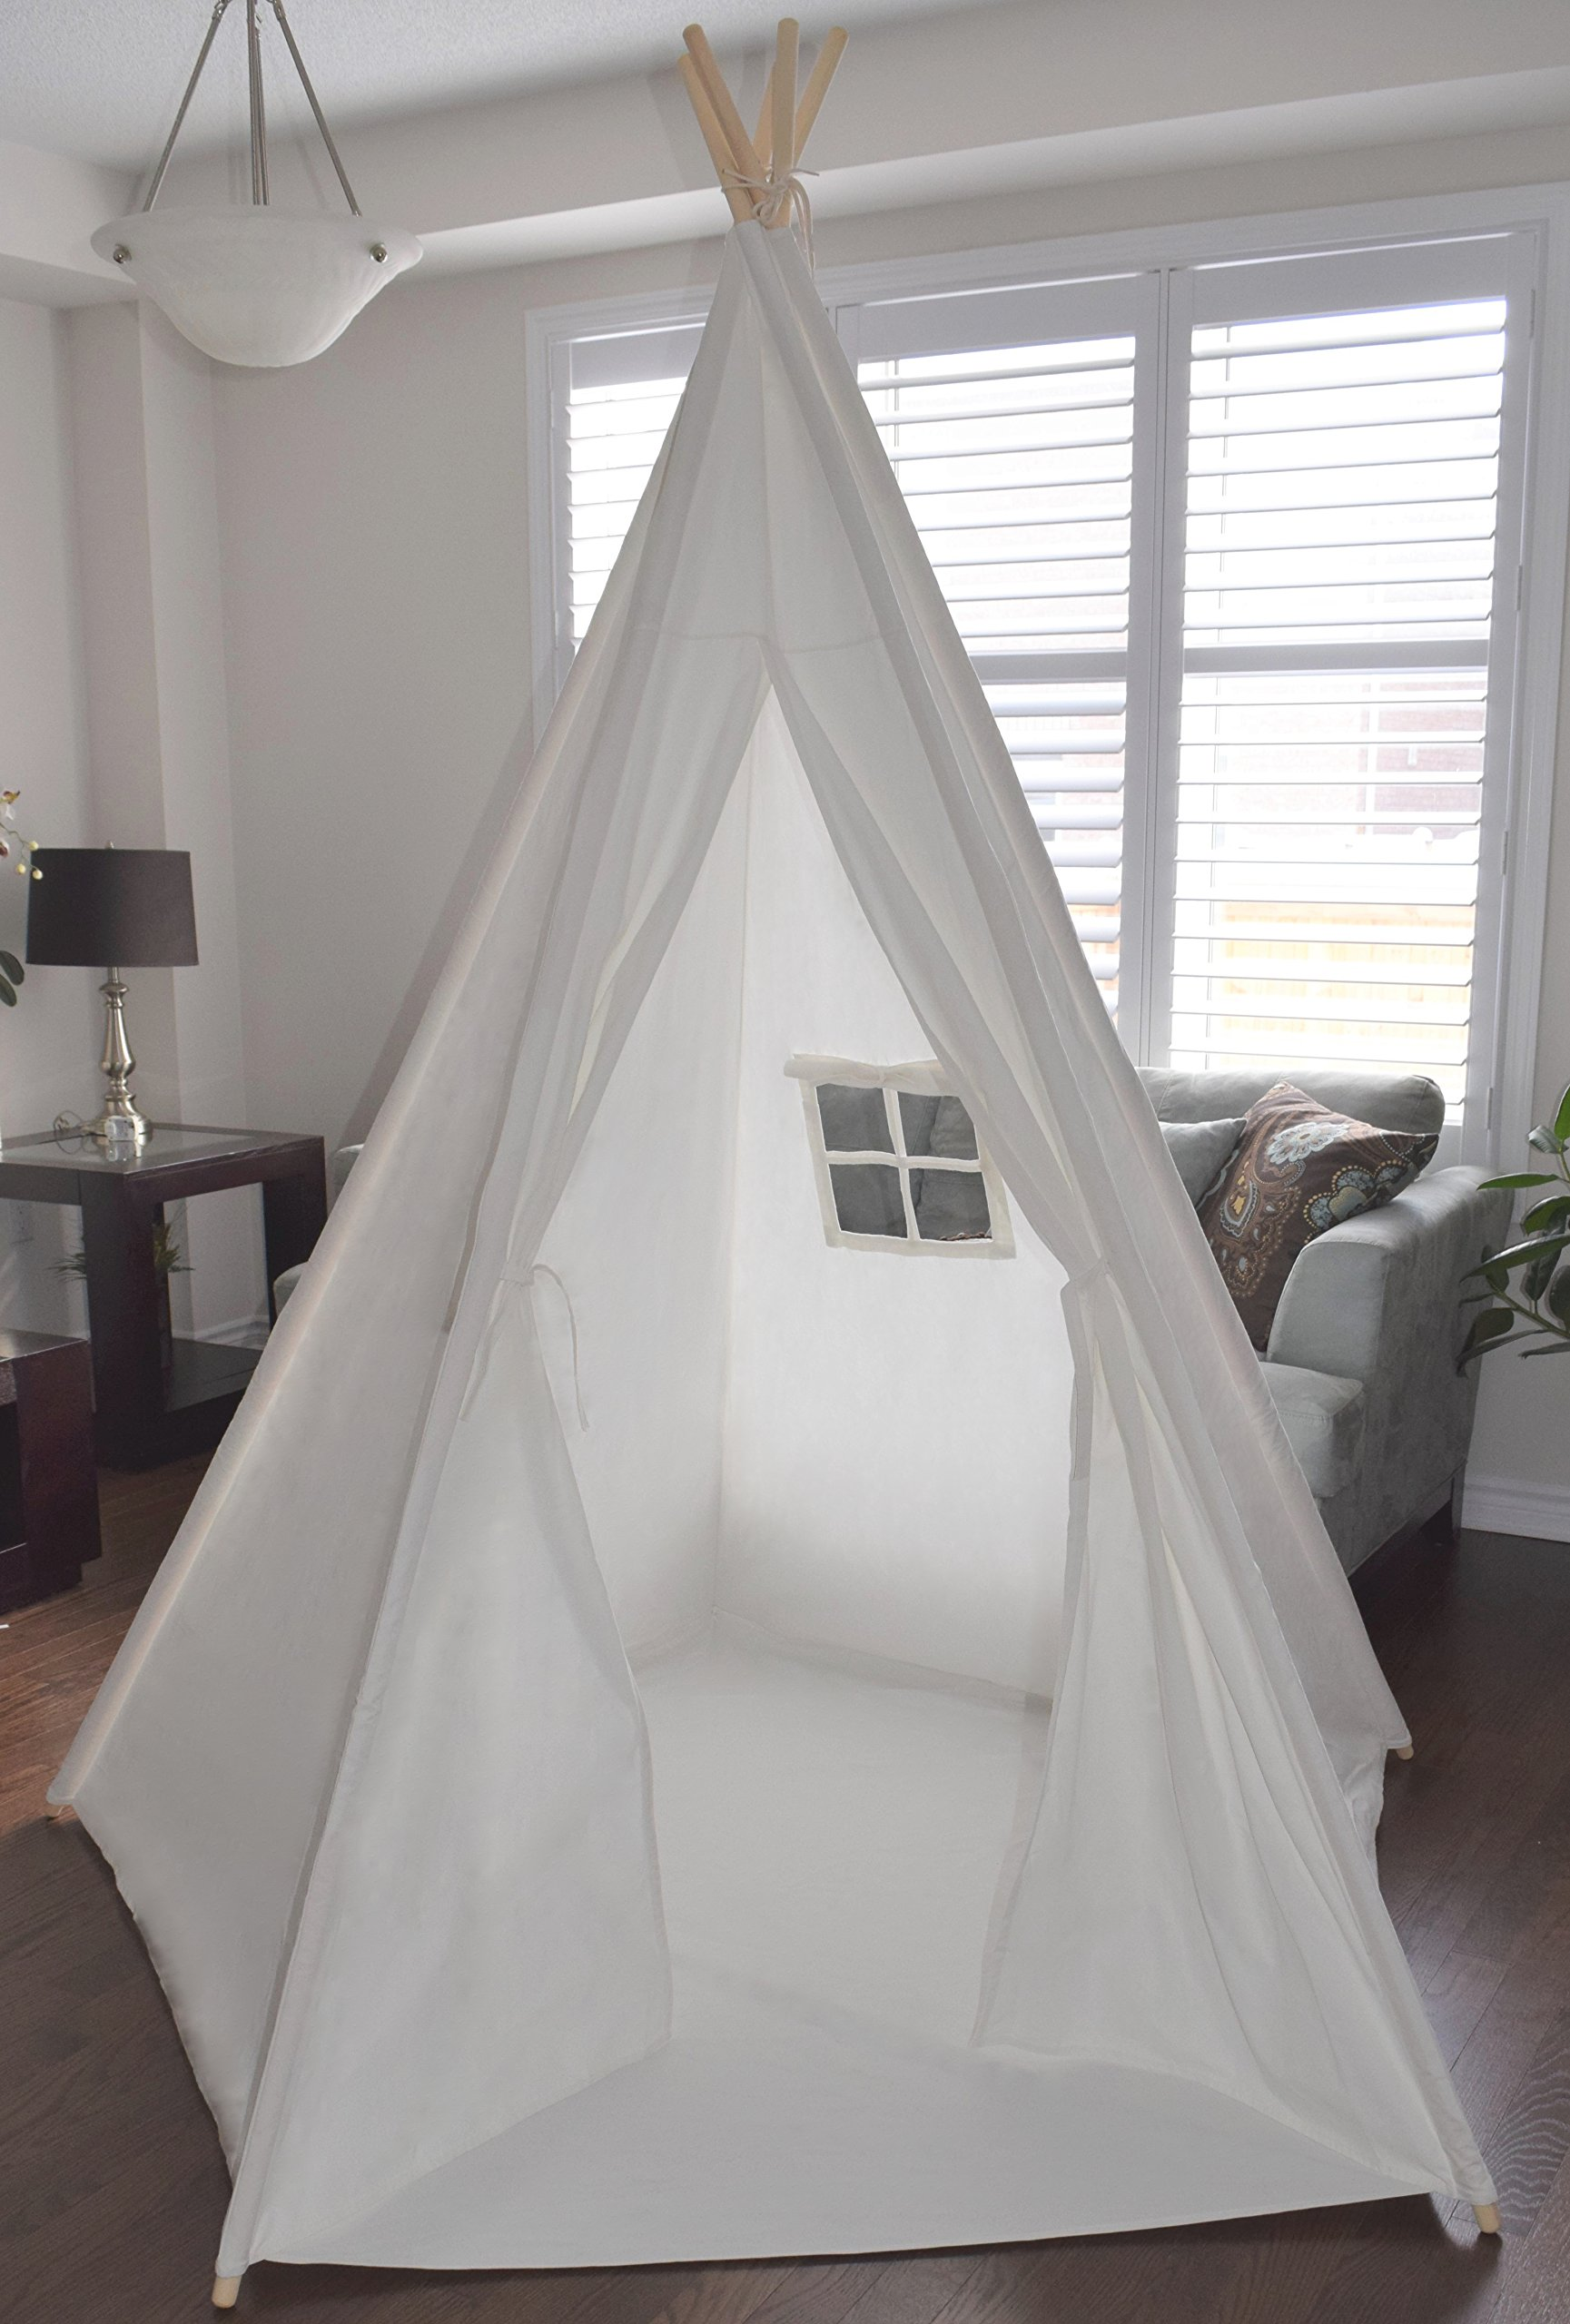 Giant 7' 2'' White Canvas Teepee for Kids - Foldable Play Tent, Playhouse for Children; 5 Sides; with Floor, Window and Inside Pocket